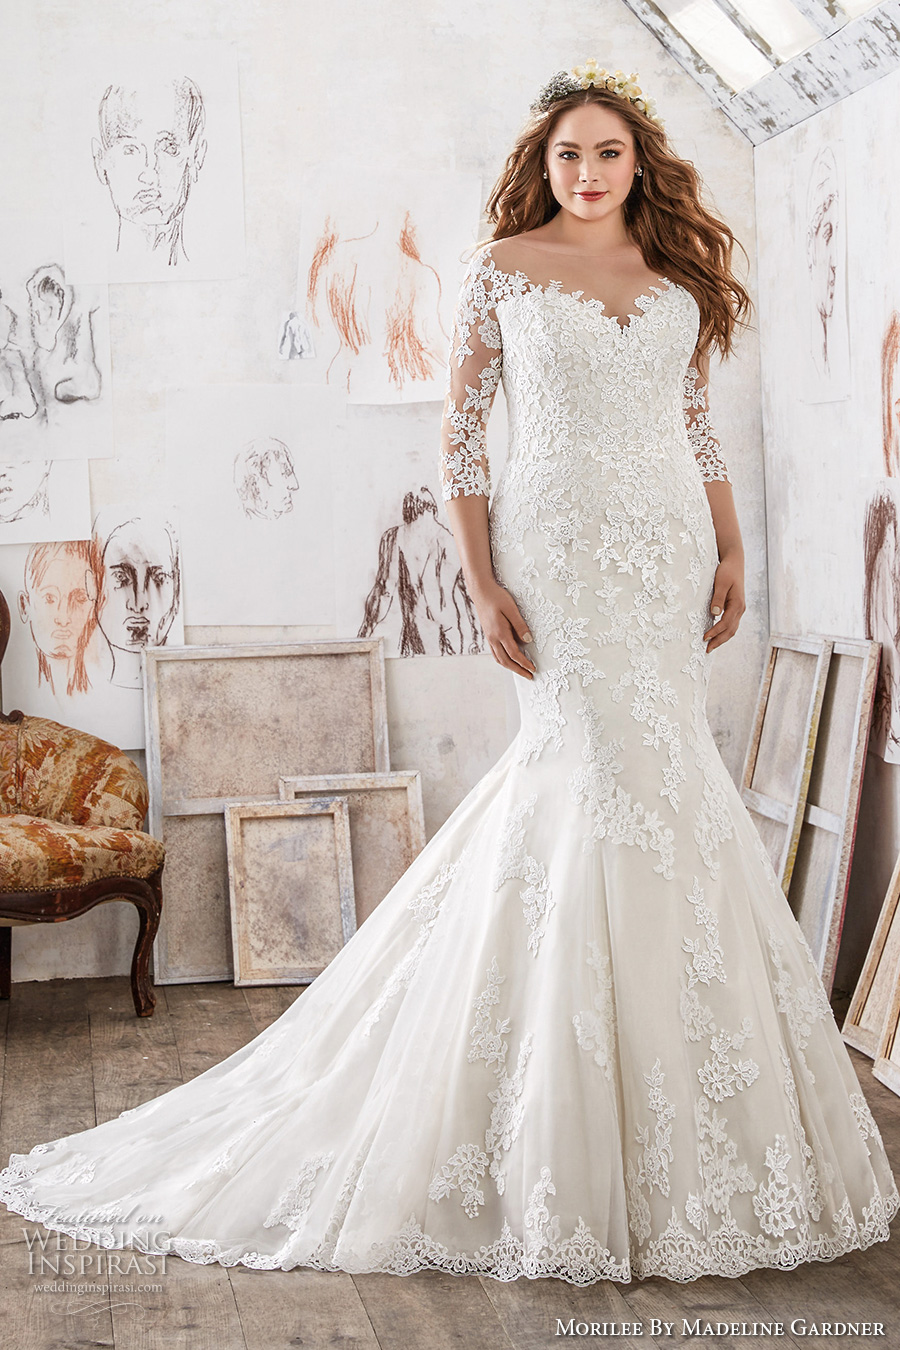 Morilee by madeline gardner spring 2017 wedding dresses for Plus size wedding dresses with color and sleeves